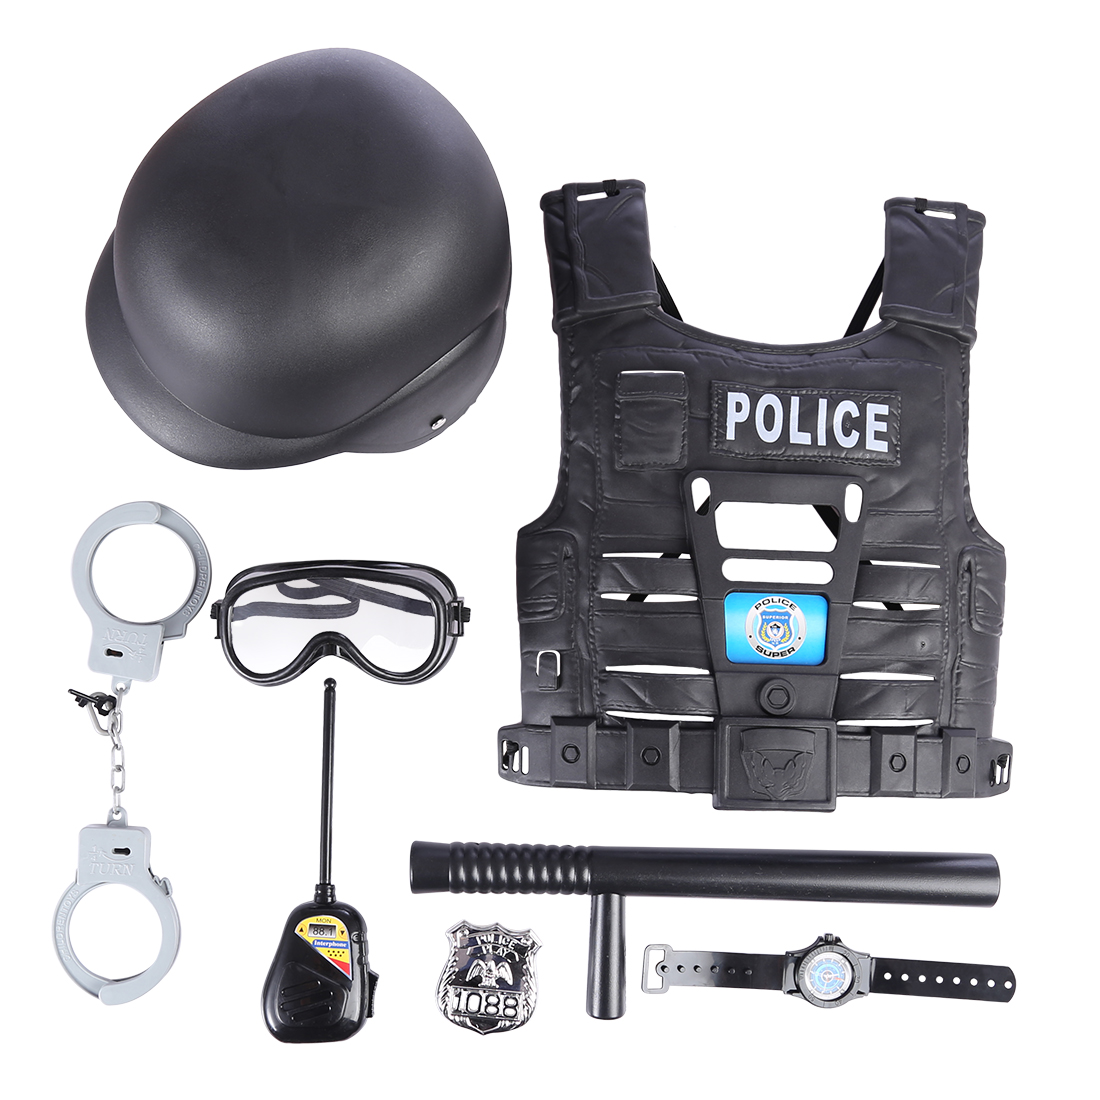 8/9/11 Pcs Police Suit For Chlidren's Policeman Cosplay Policeman Costume With Helmet Goggles Police Officer Wear For Kids